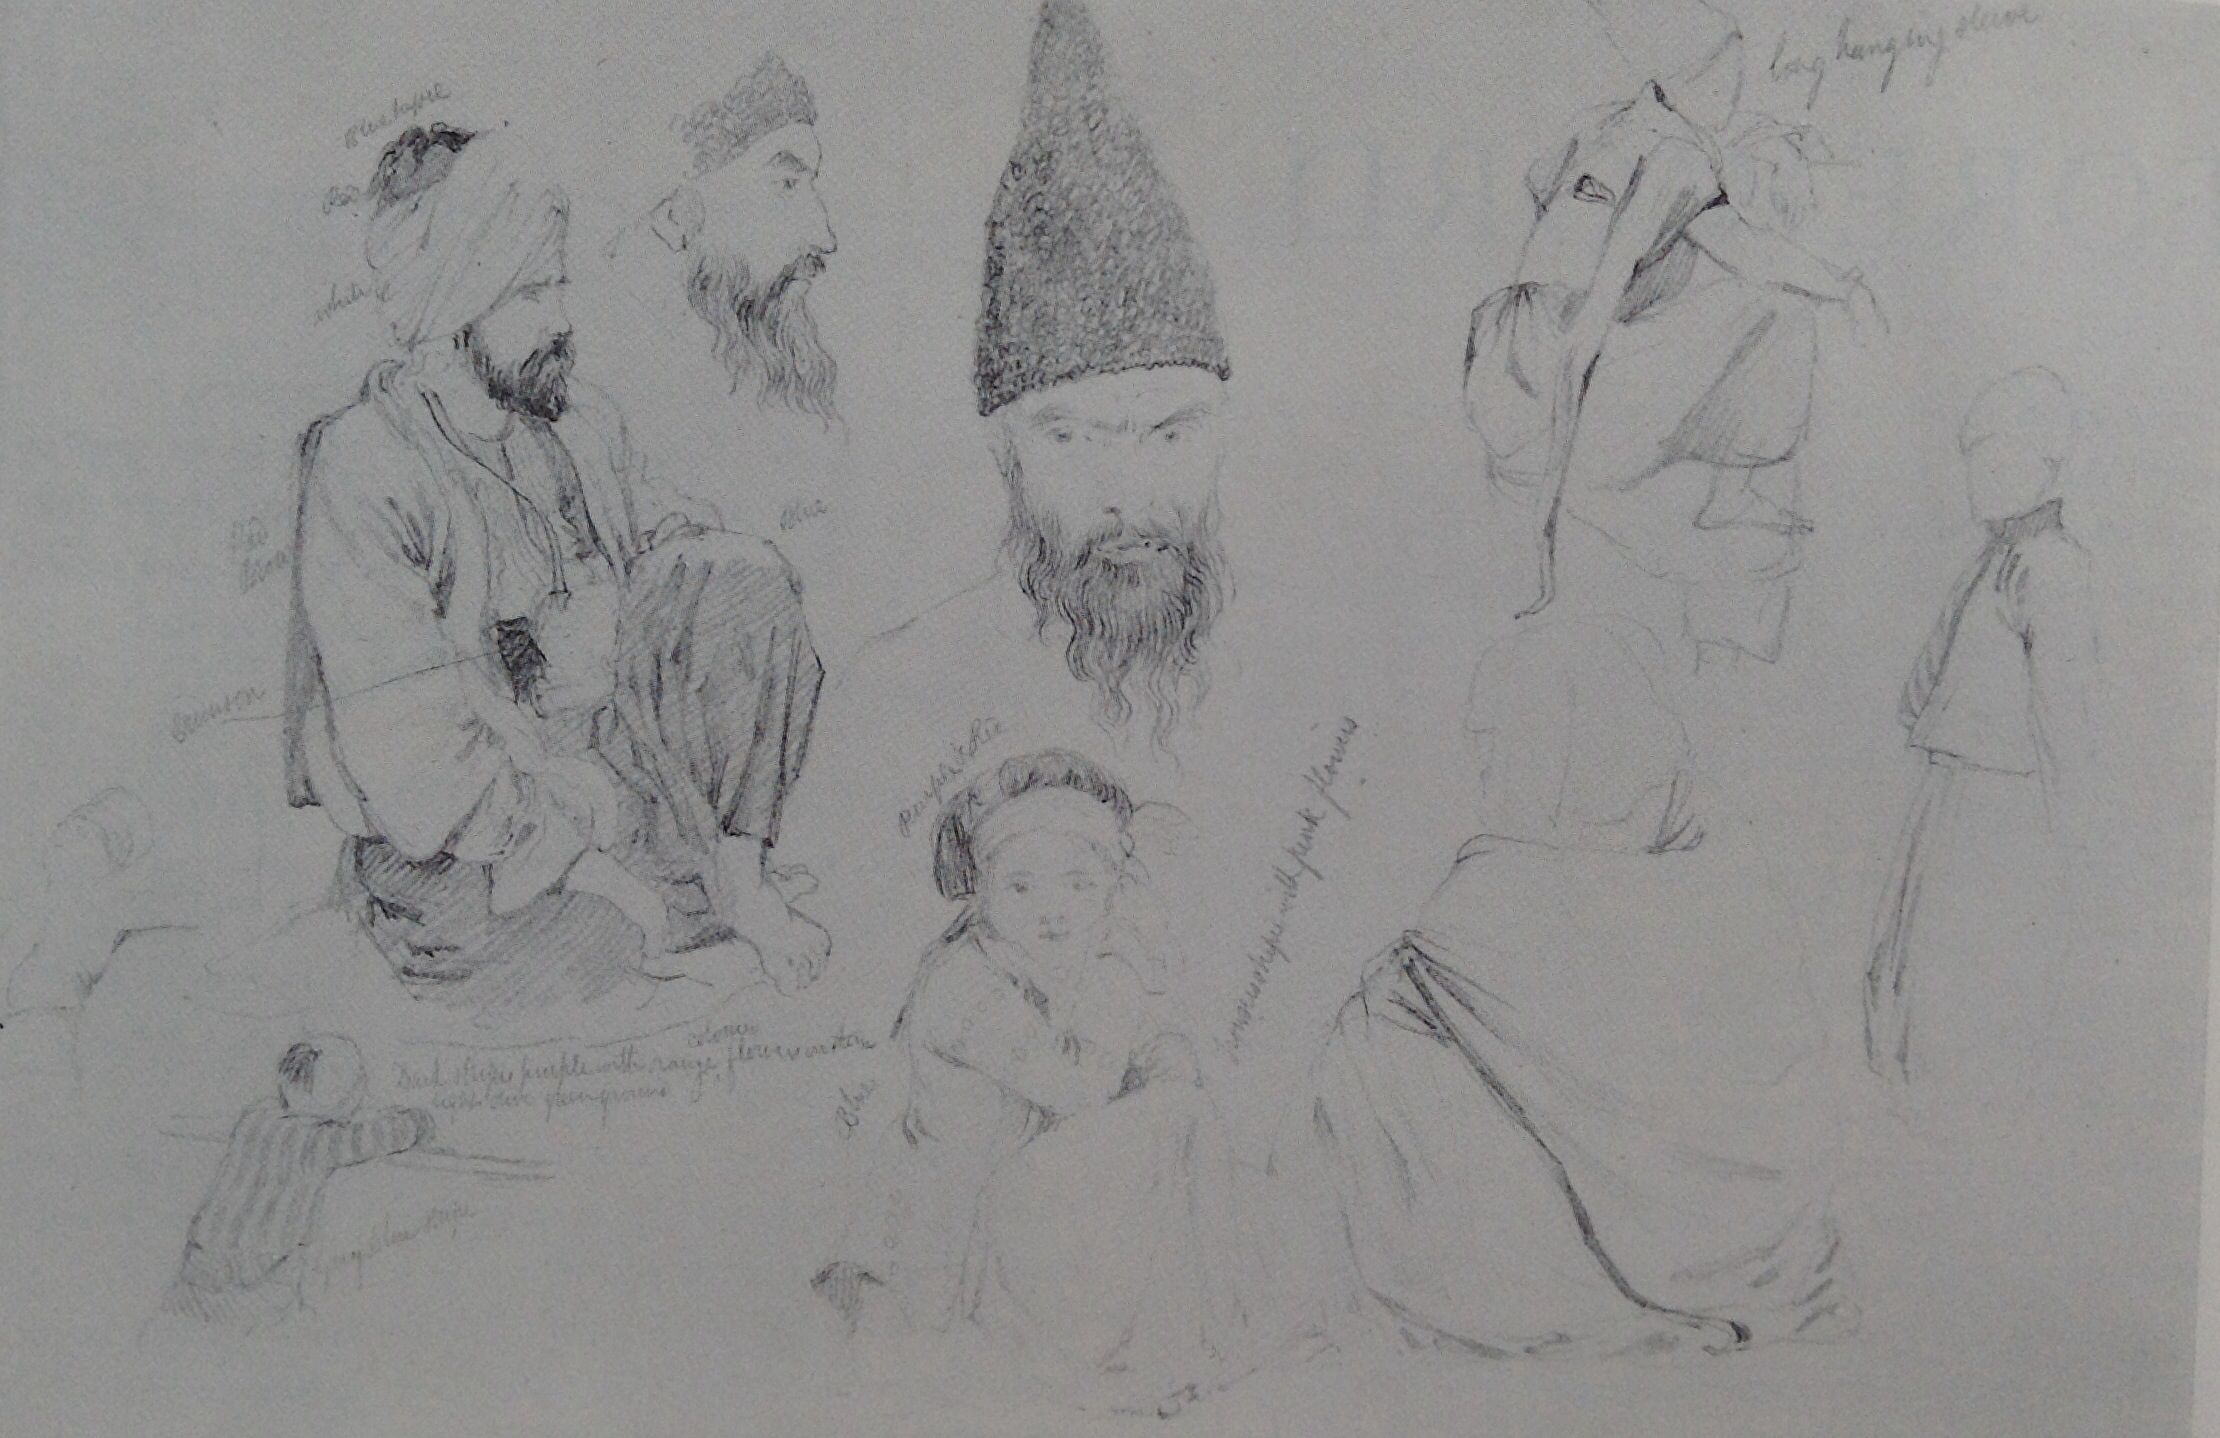 Sketchbook page 'Figure Studies in Turkey & Syria 1842 by Richard Dadd.